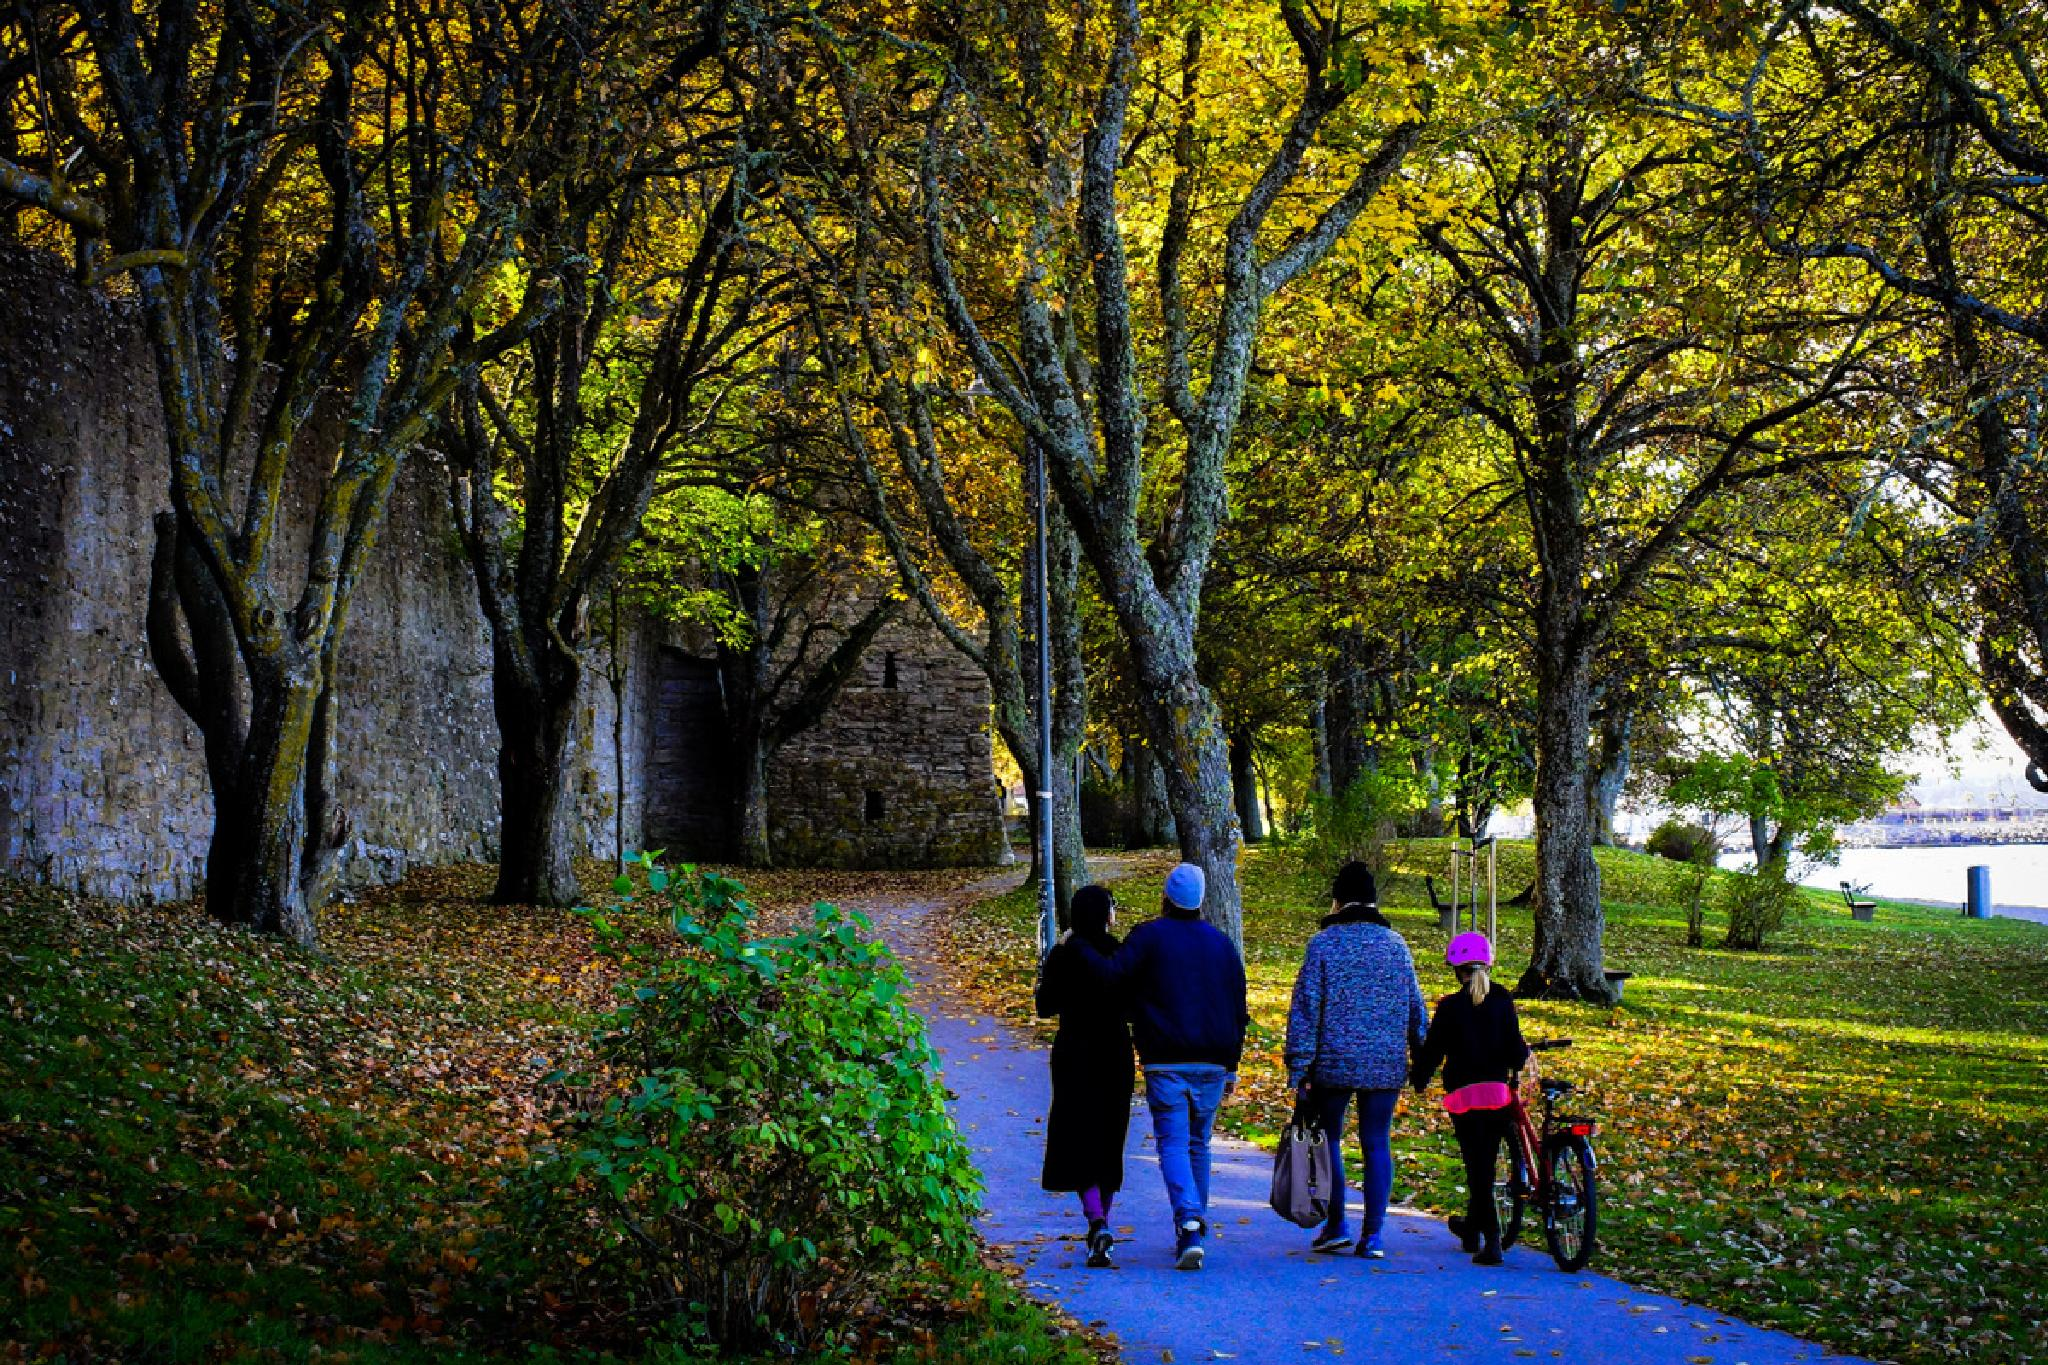 Family walk in the autumn by Jane.lindbladh